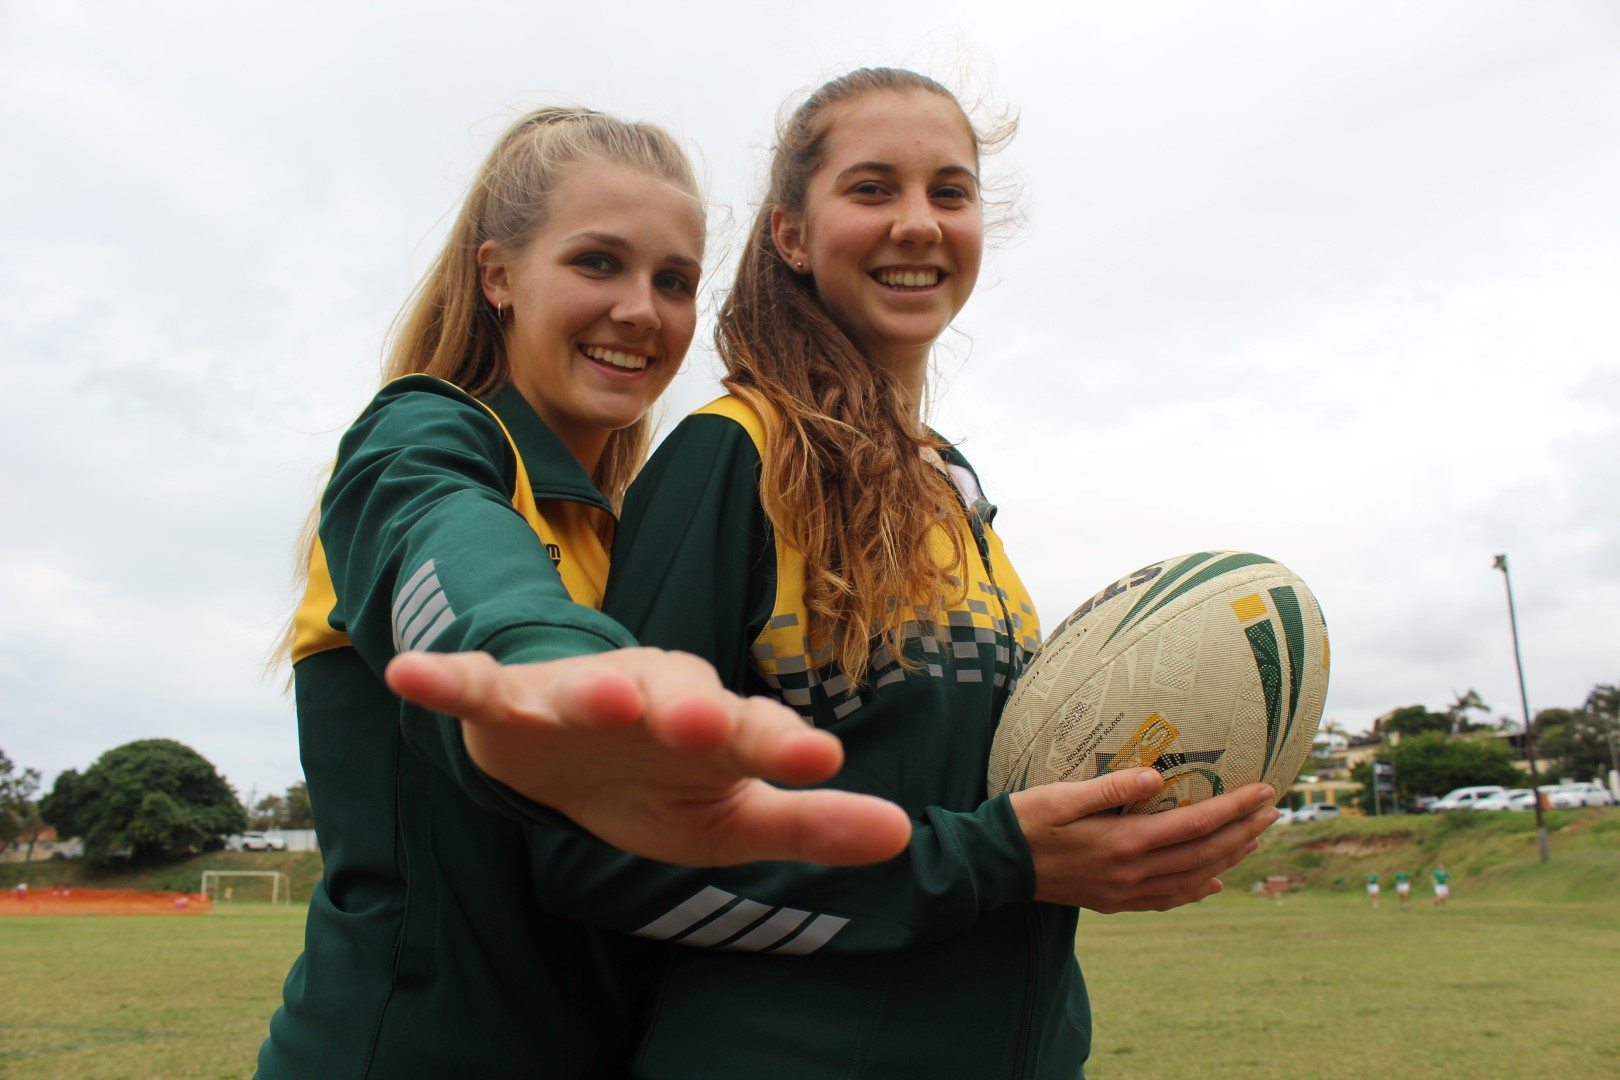 Paige Waberski and Tannah Swart represented the South African U18 ladies team at this year's Federation of International Touch (FIT) Youth Touch World Cup in Malaysia. The team won bronze at the tournament.